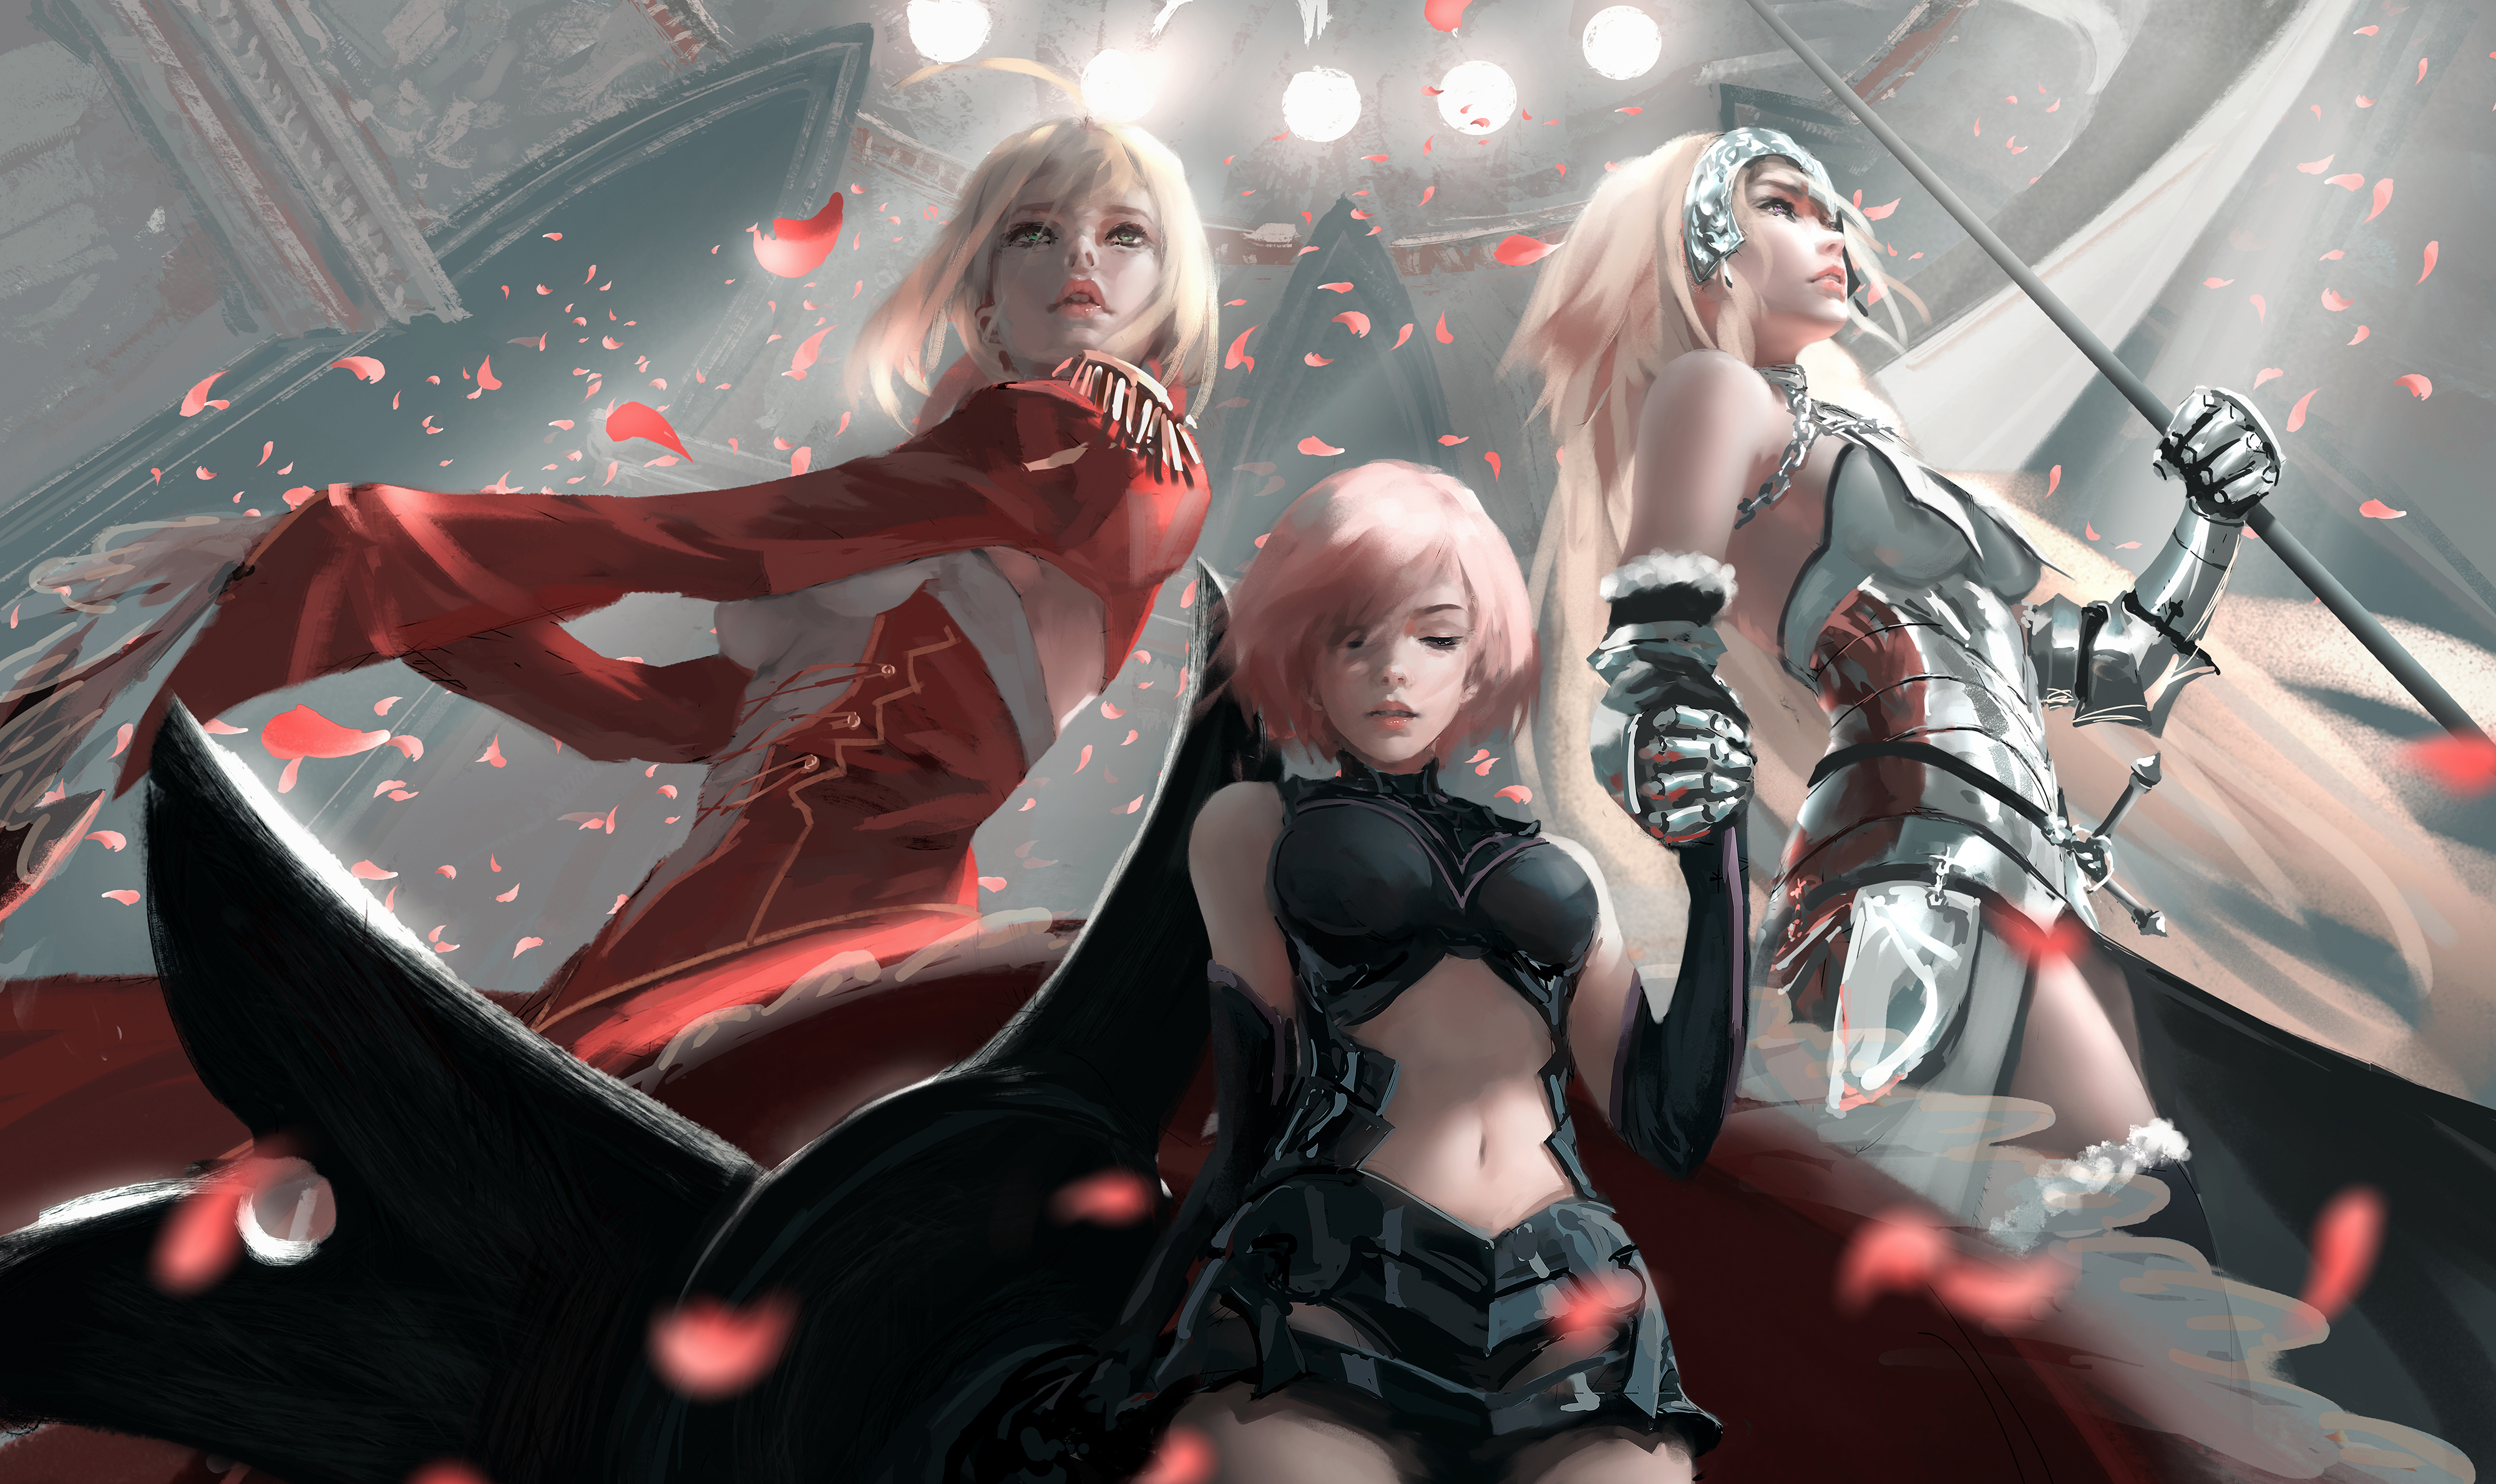 wlop digital art fate/grand order painting artwork anime girls fate series drawing anime jeanne d'arc(fate/grand order) nero claudius mashu kyrielight